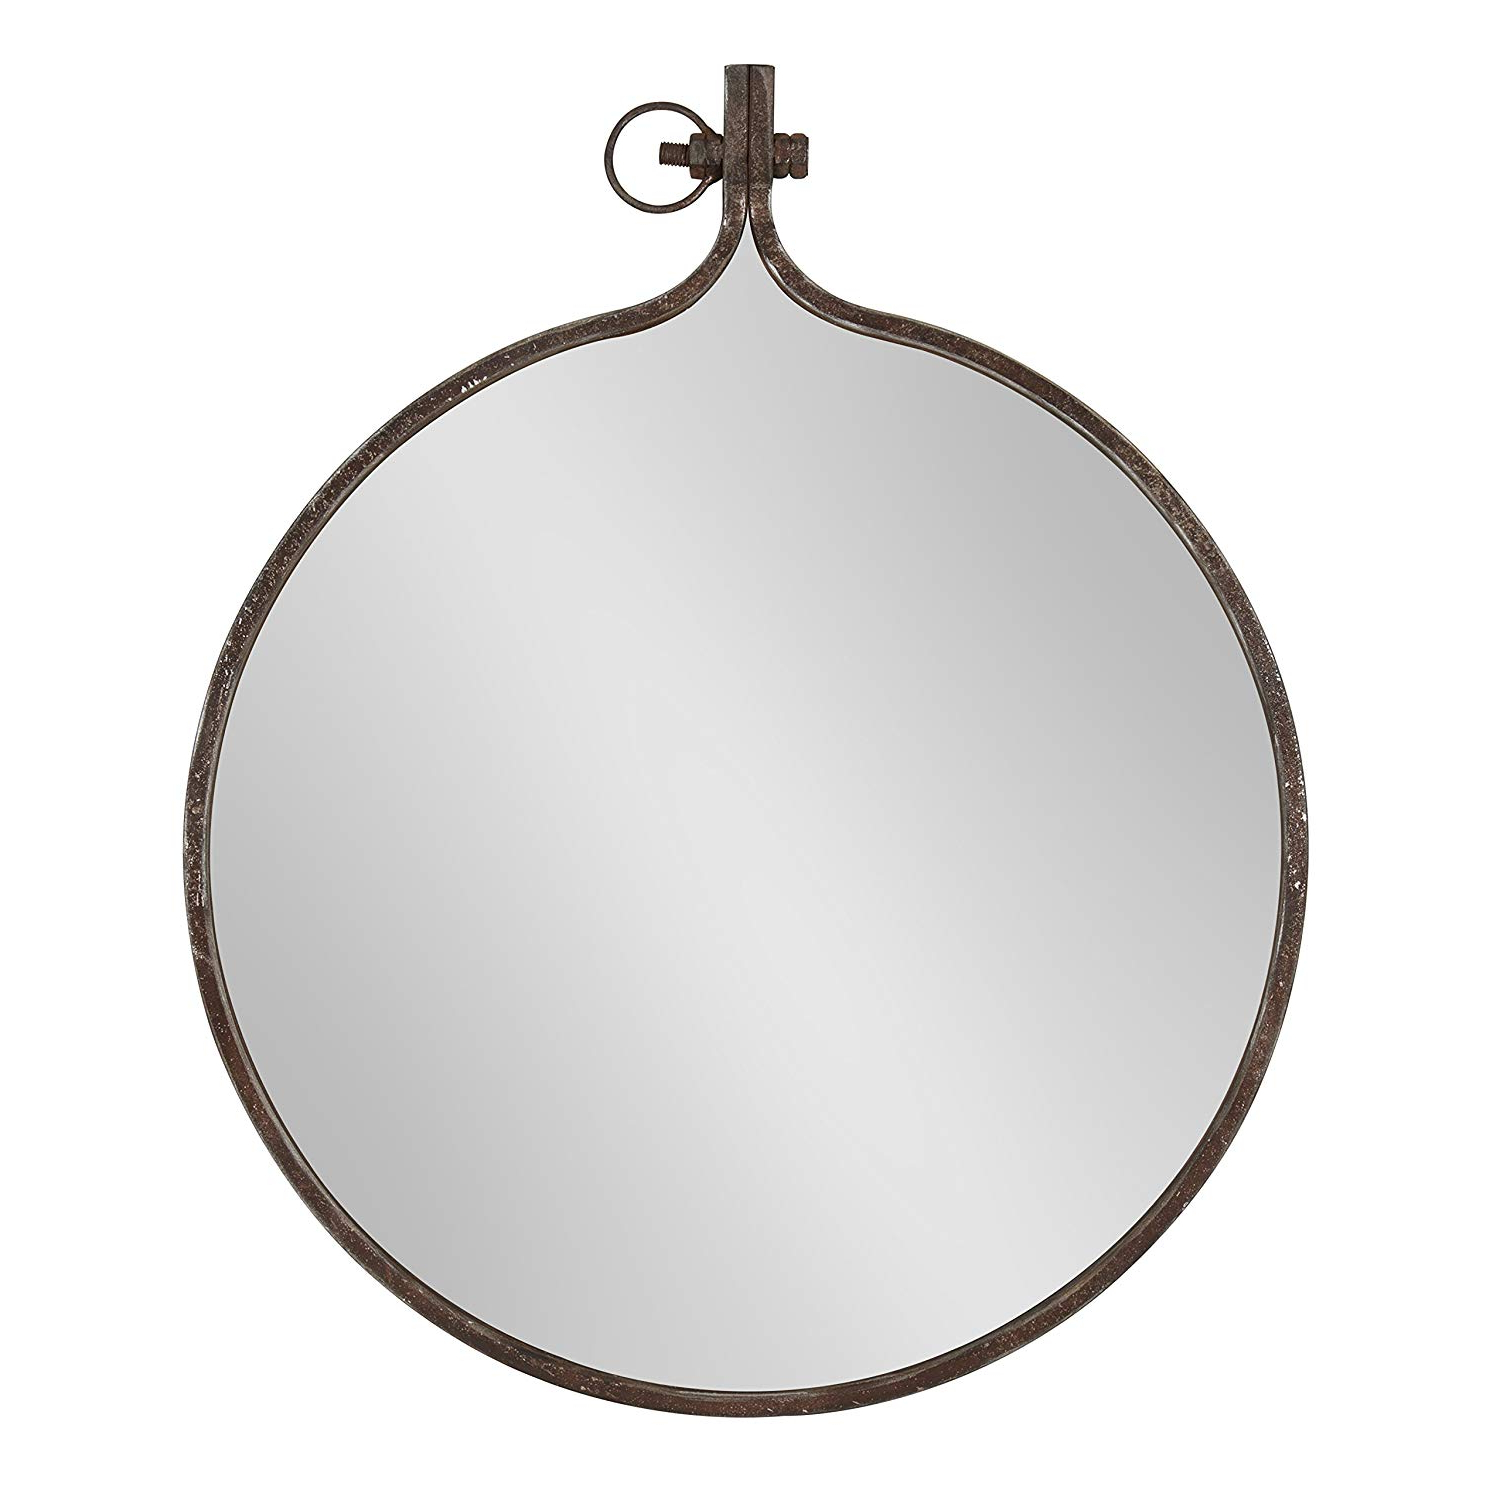 Kate And Laurel Yitro Round Industrial Rustic Metal Framed Wall Mirror, (View 8 of 20)